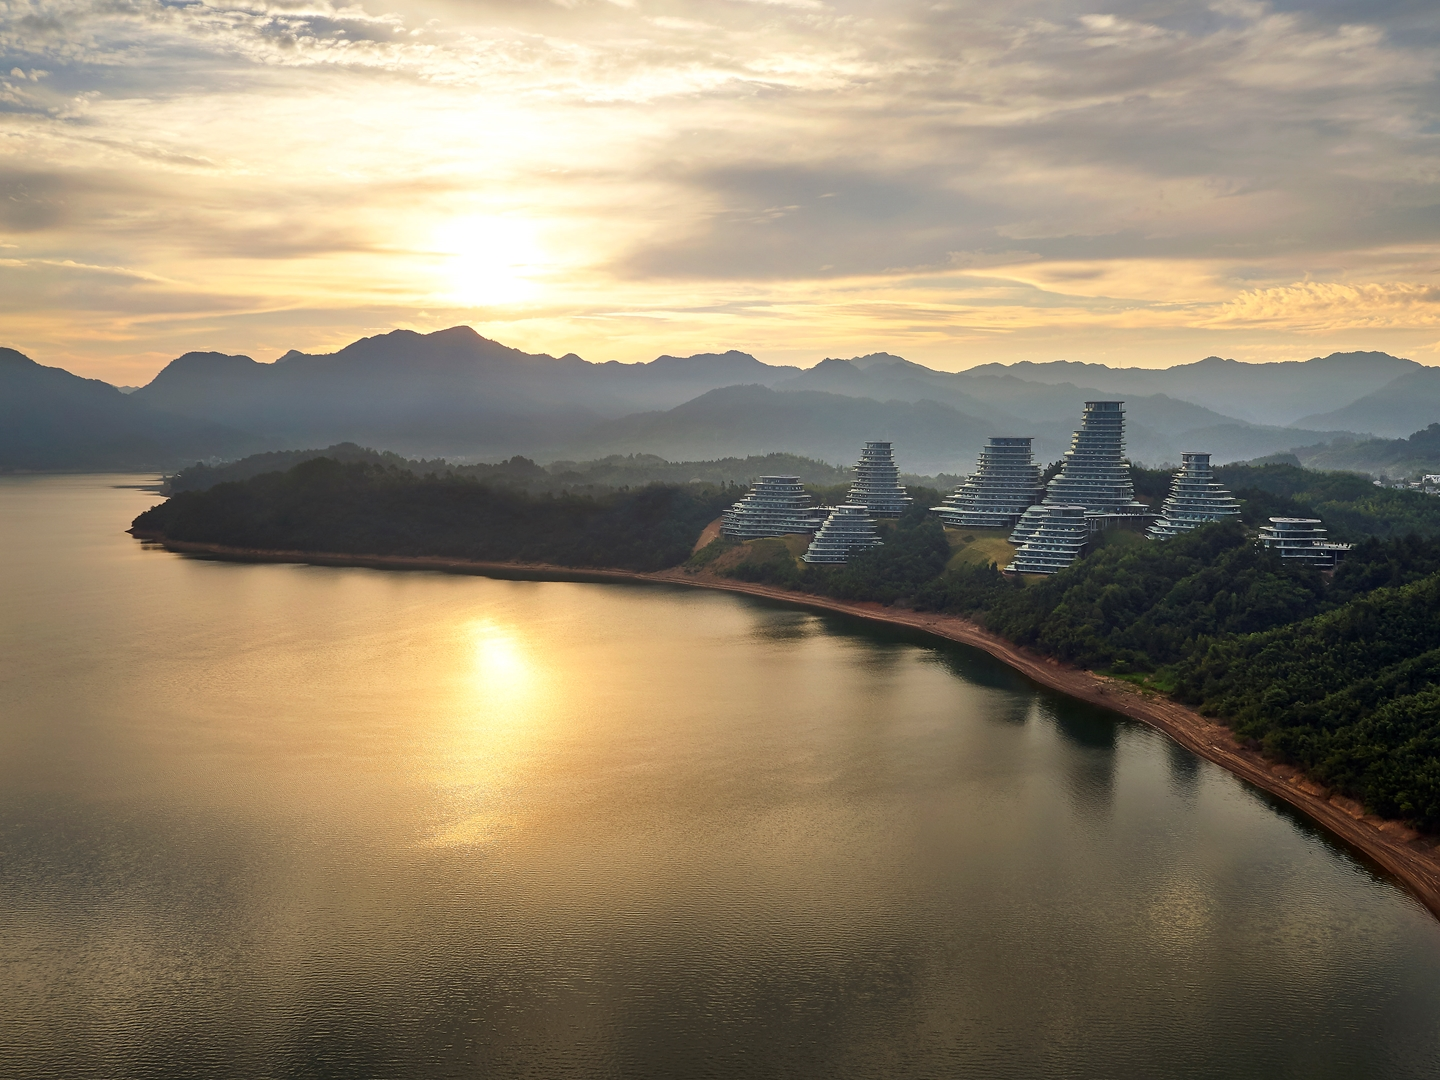 MAD_Huangshan Mountain Village_25_by Hufton+Crow (Copy)